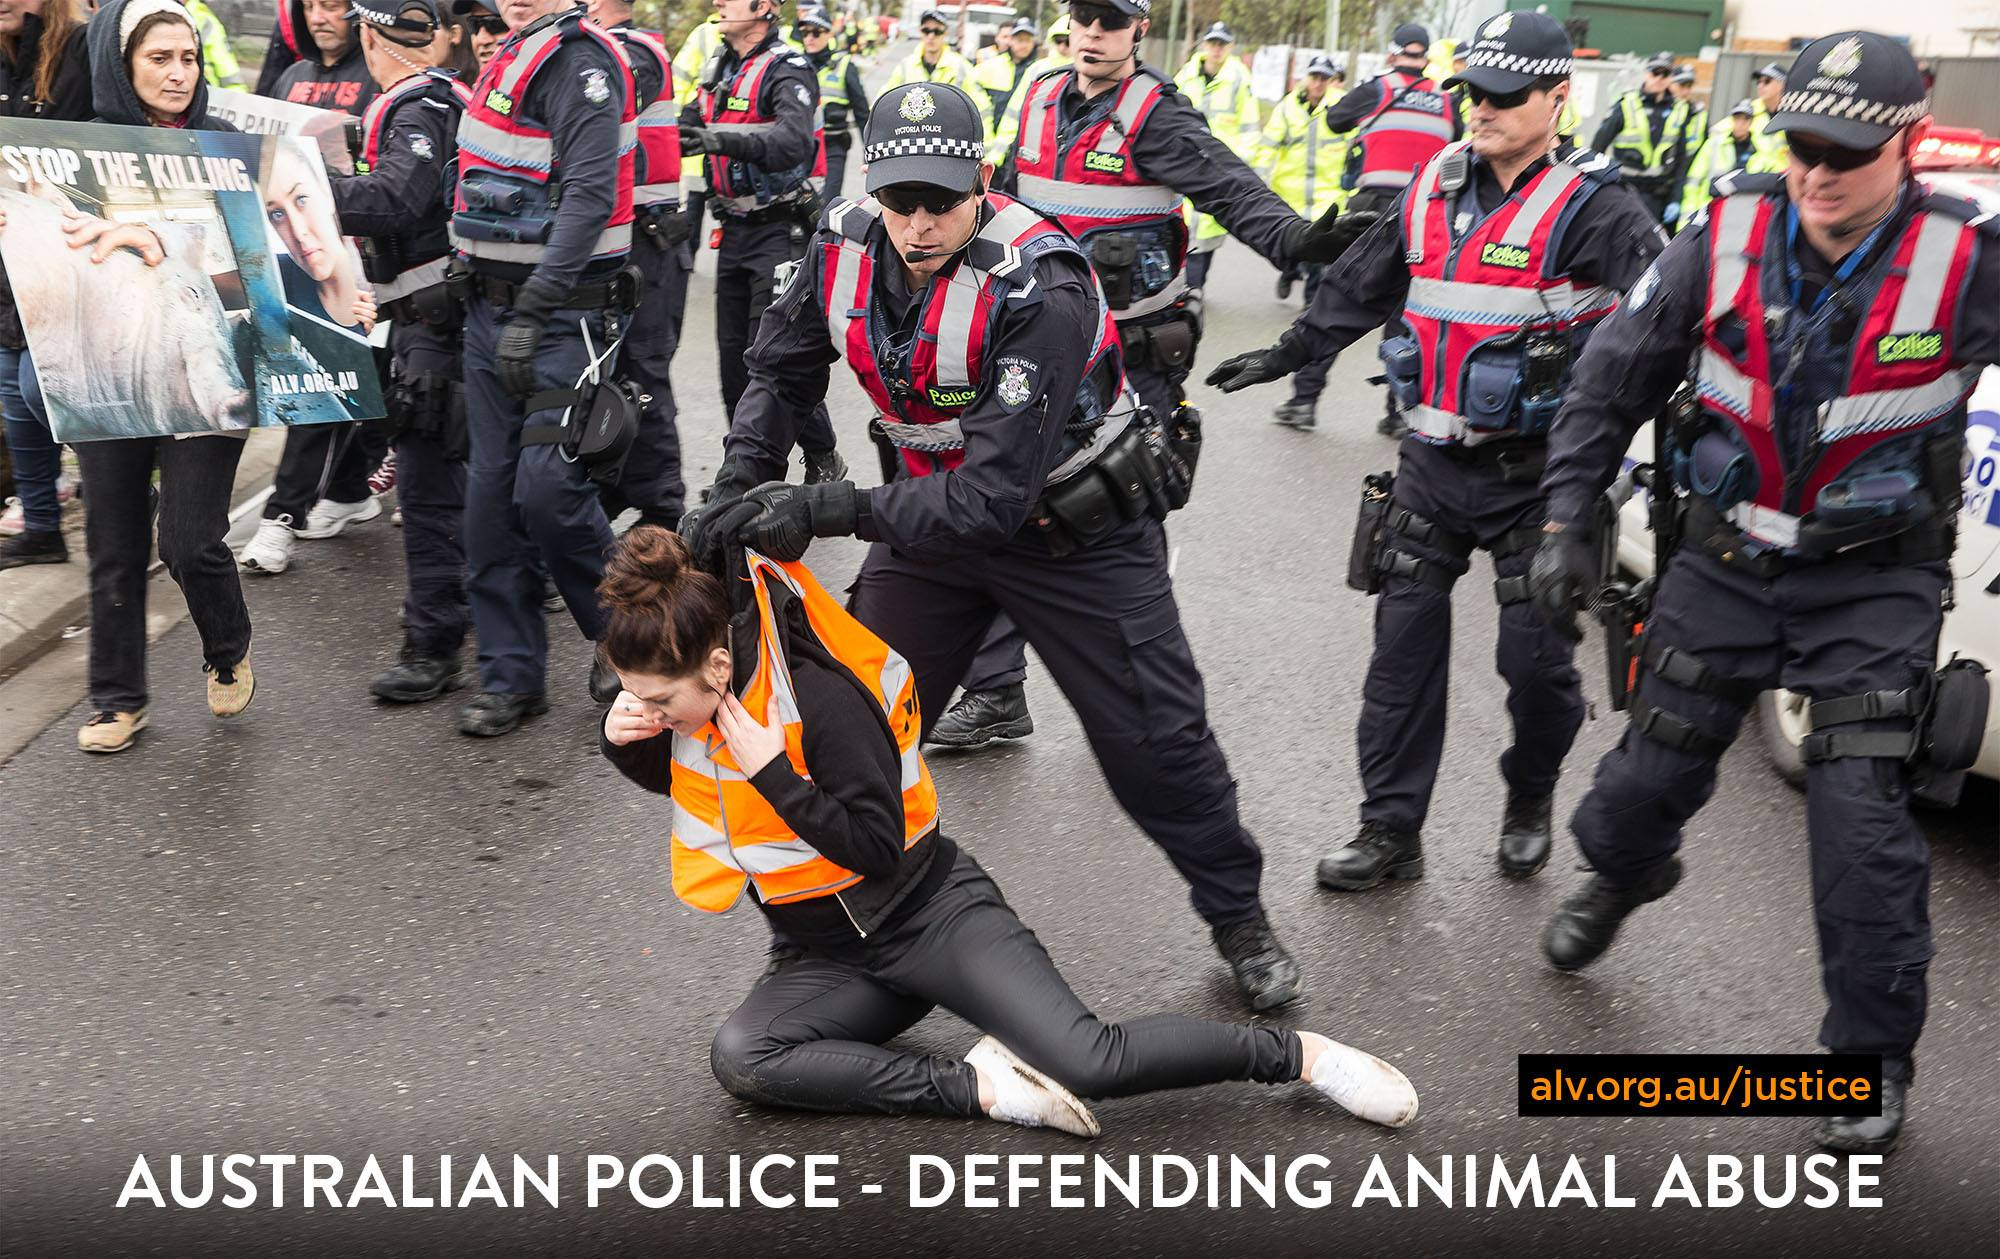 Aus police, defending animal abuse